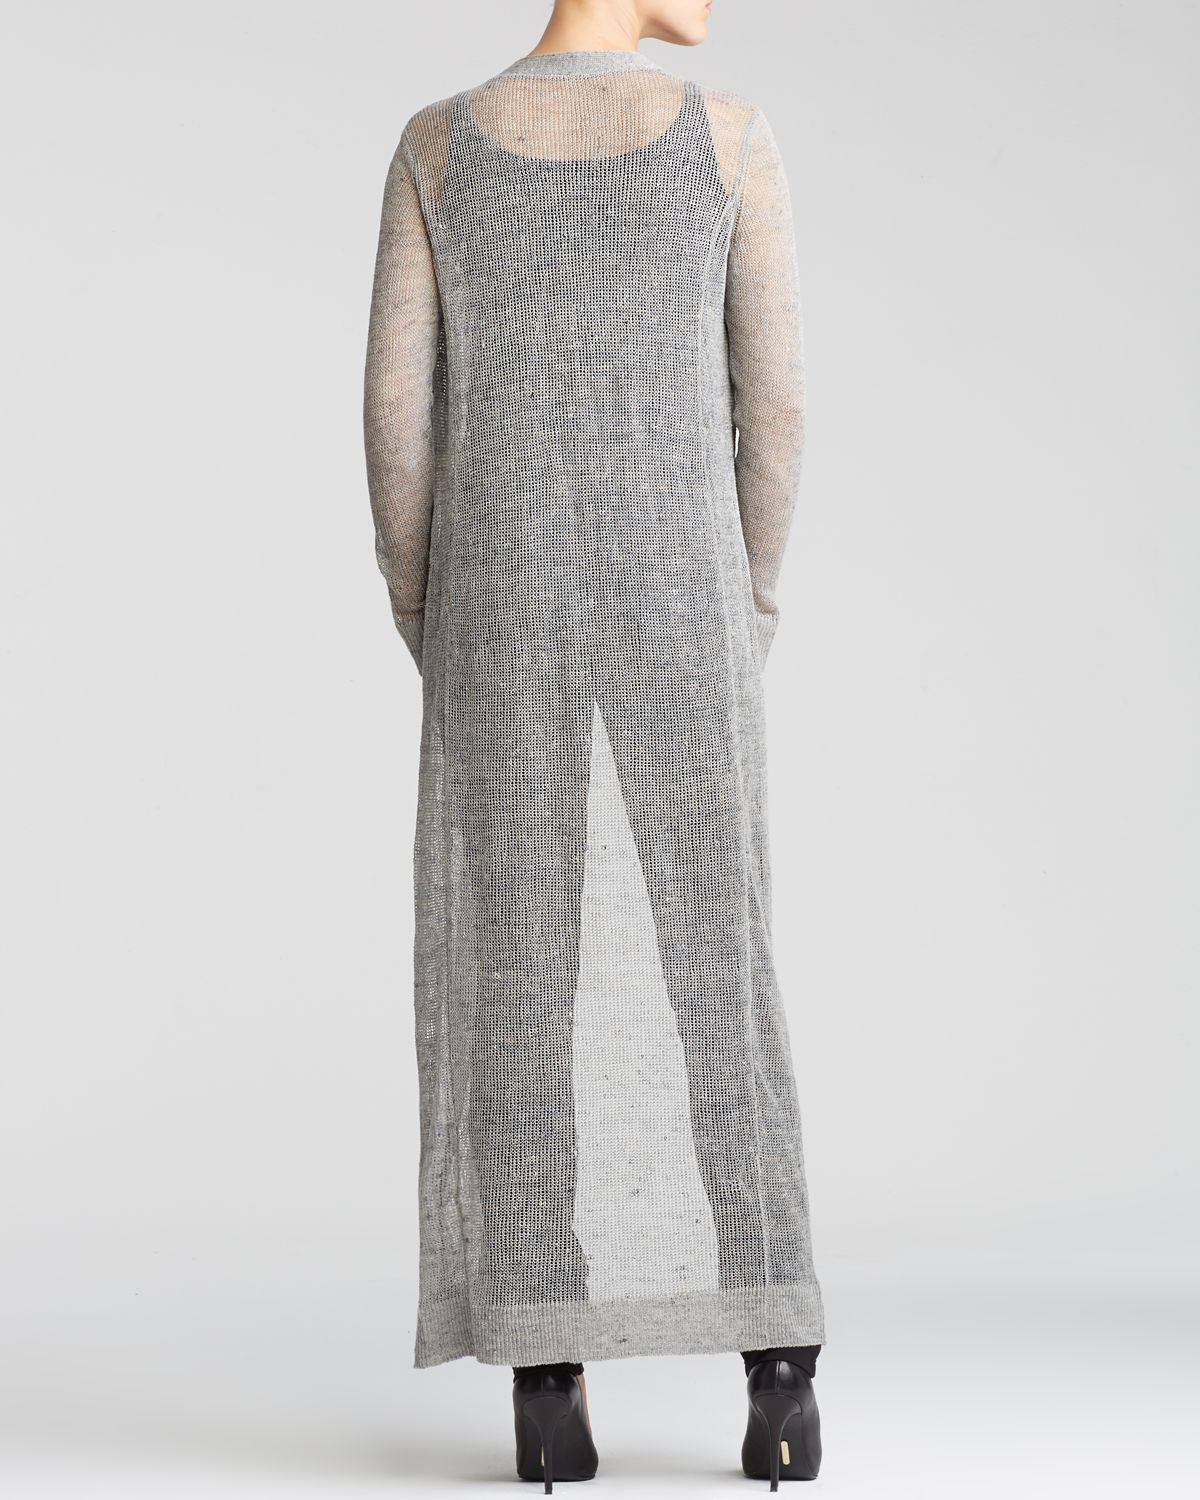 76ebbbe55d Eileen Fisher Maxi Cardigan - The Fisher Project in Gray - Lyst